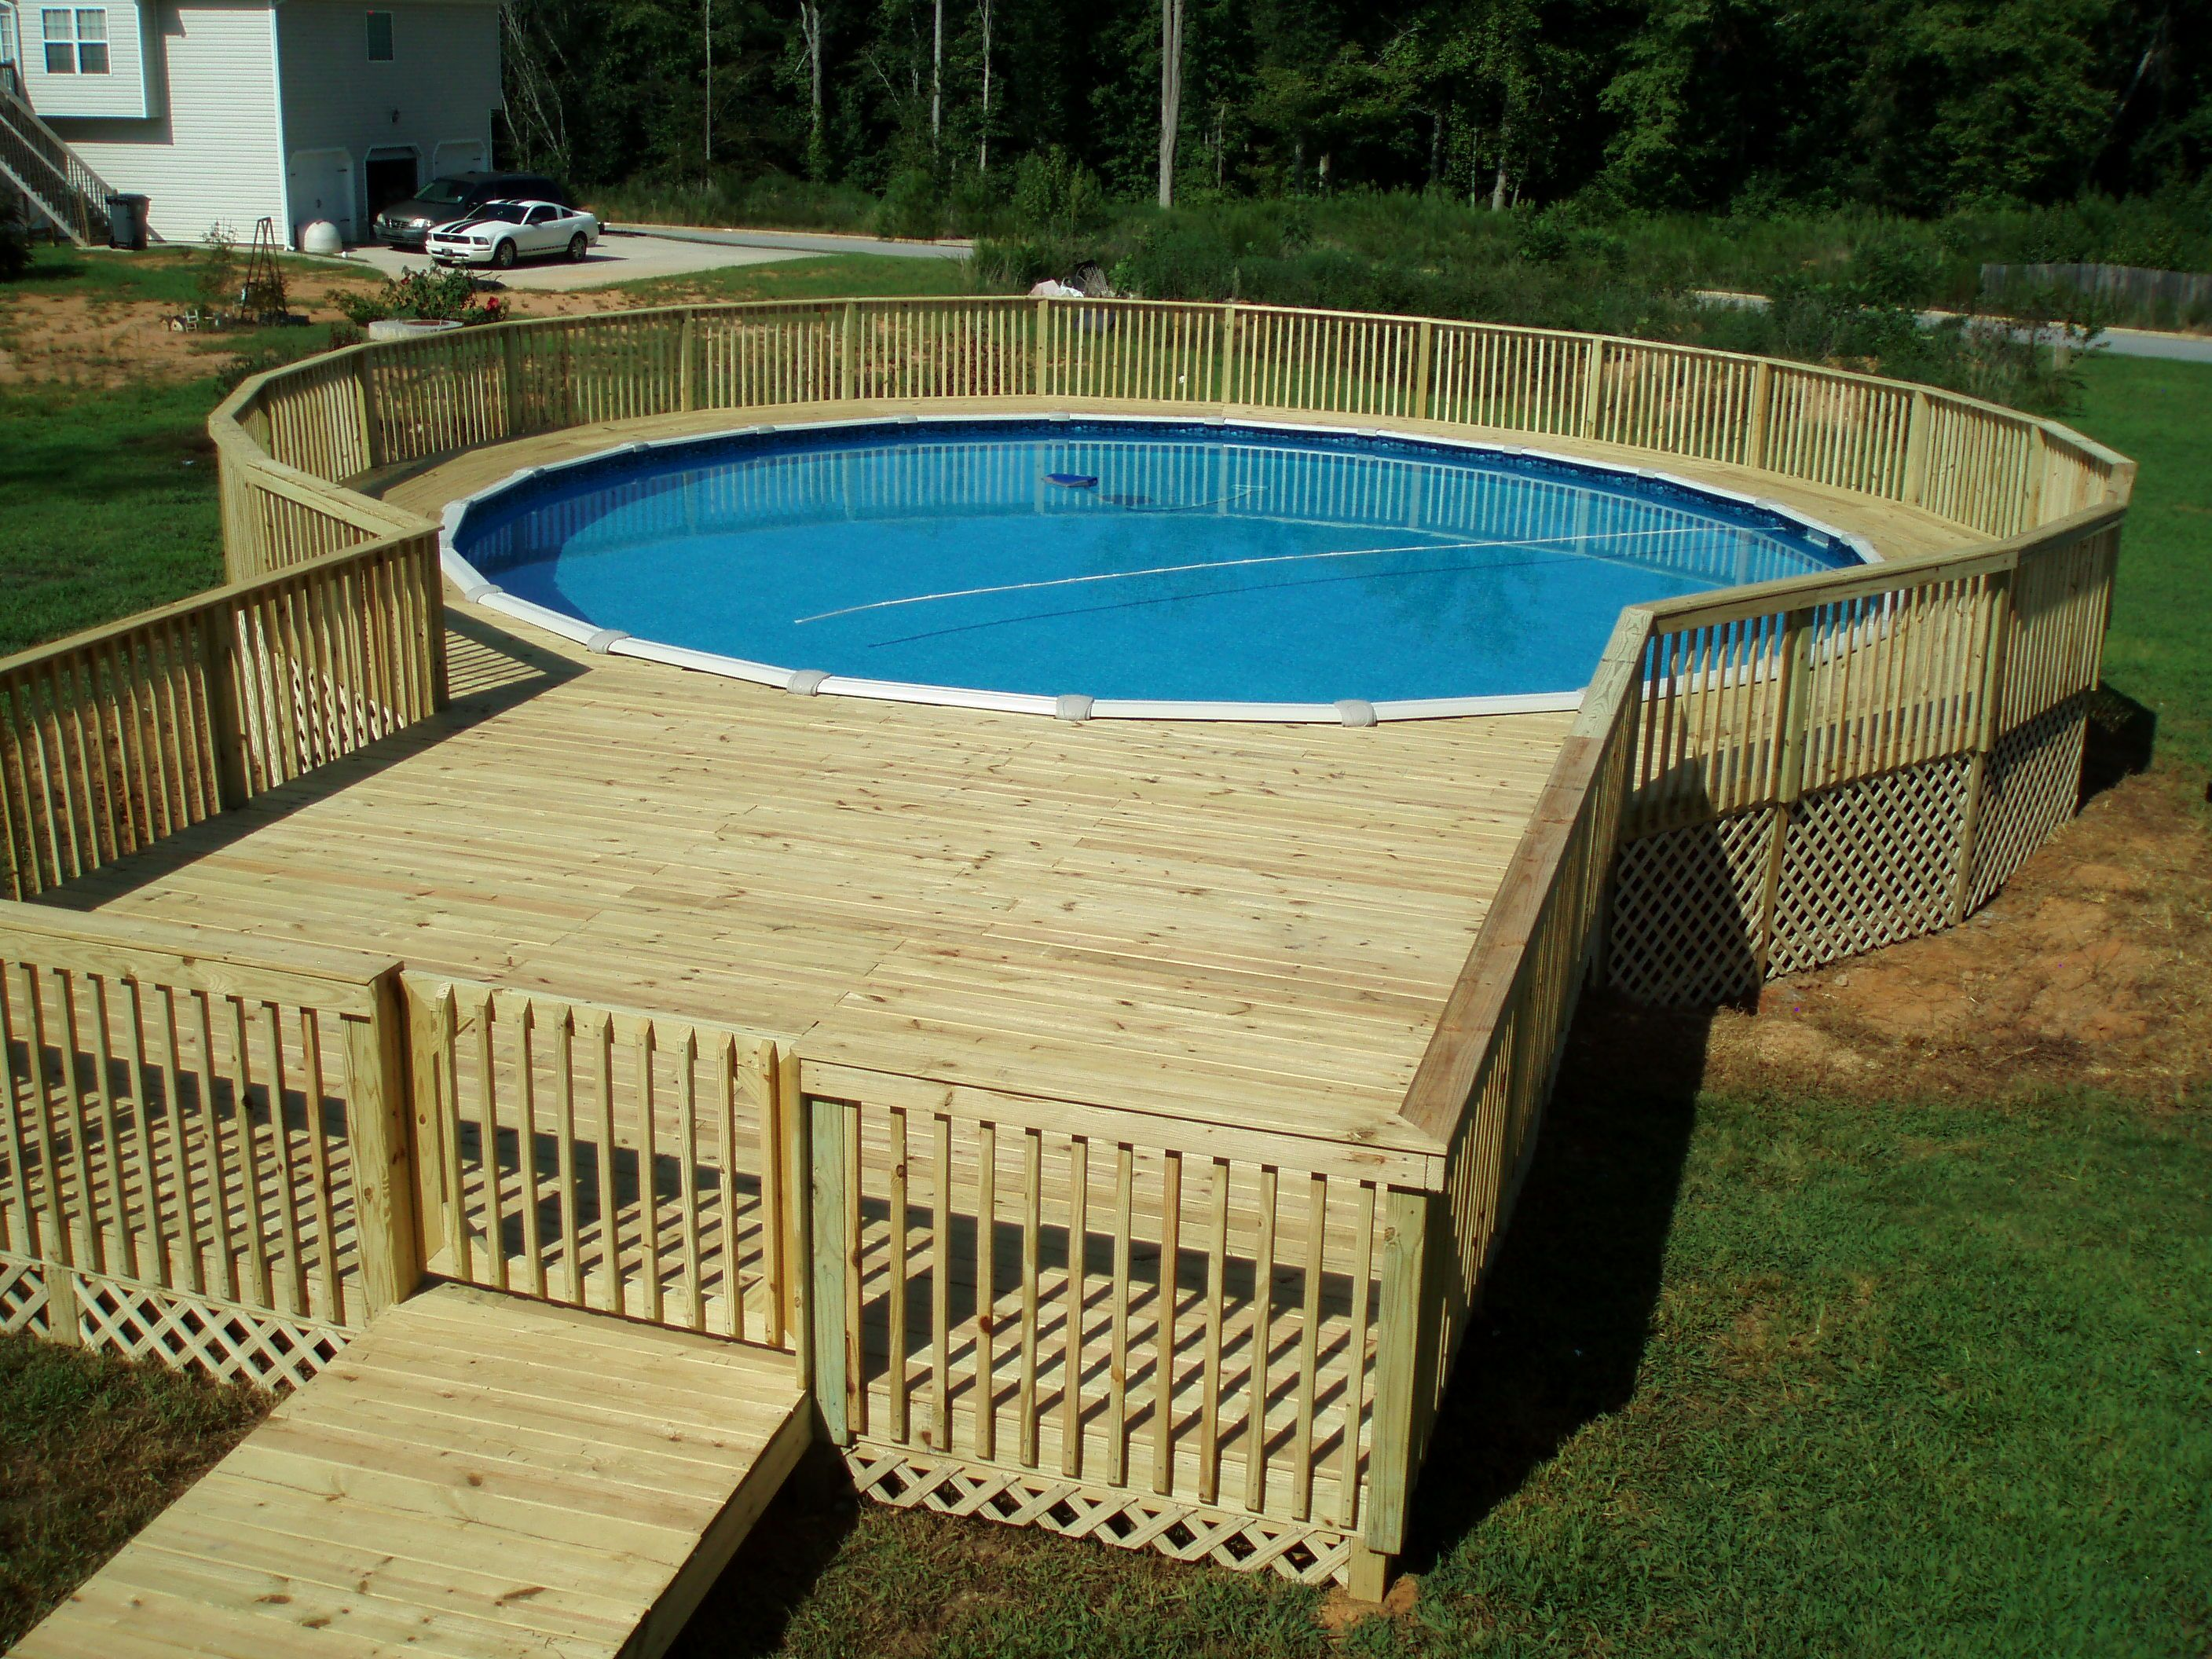 Amazing Above Ground Pool Ideas And Design Deck Ideas Landscaping Hacks Toys Diy Maintenance Insta Pool Deck Plans Decks Around Pools Backyard Pool